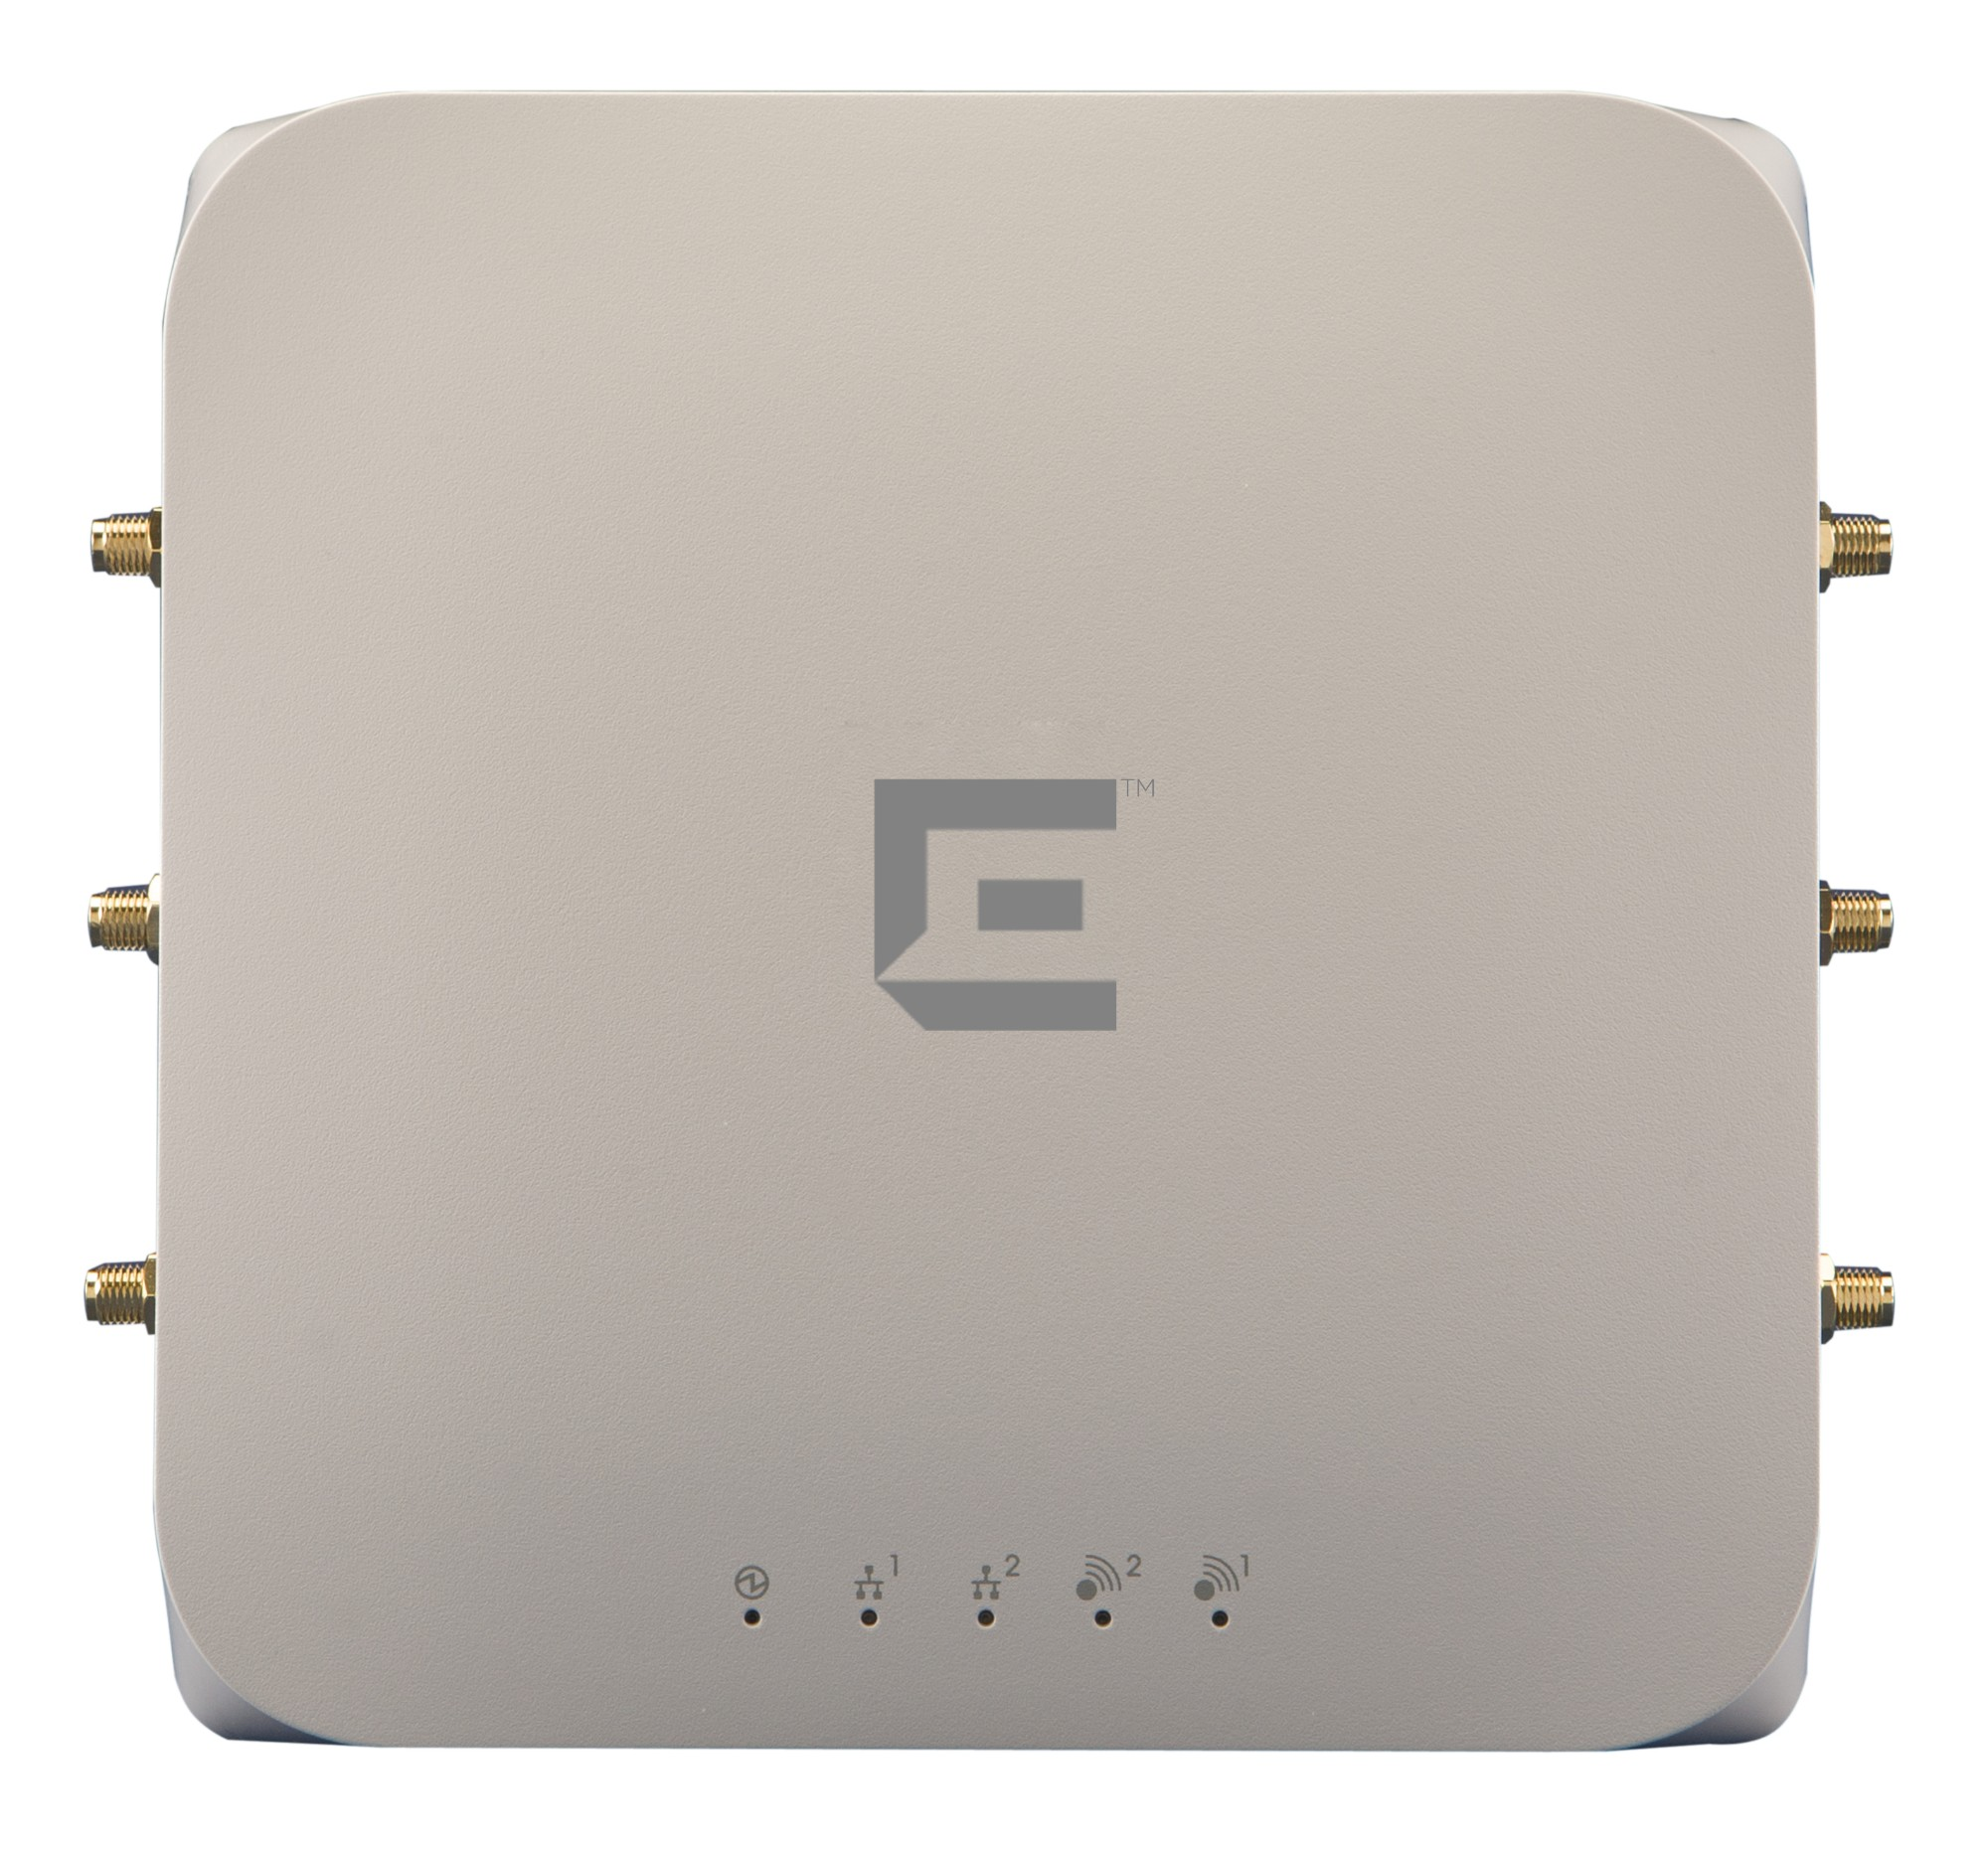 Extreme networks WS-AP3825E 1750Mbit/s Power over Ethernet (PoE) White WLAN access point